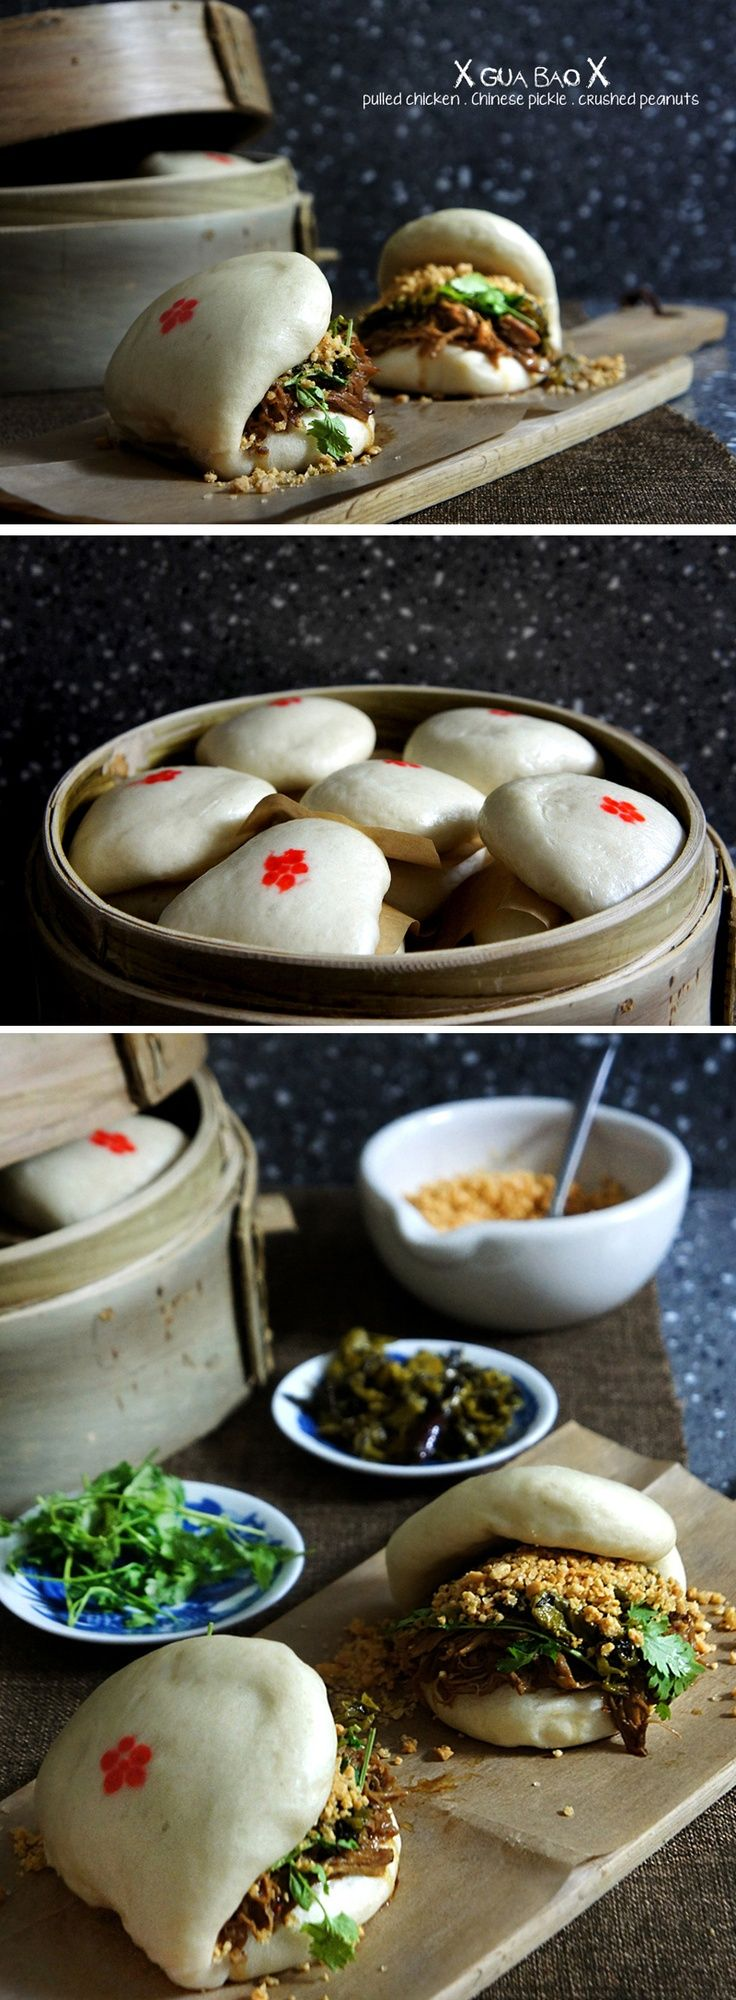 Gua Bao or known as flat steamed buns (with pulled chicken, peanuts, & Chinese pickled cabbage)